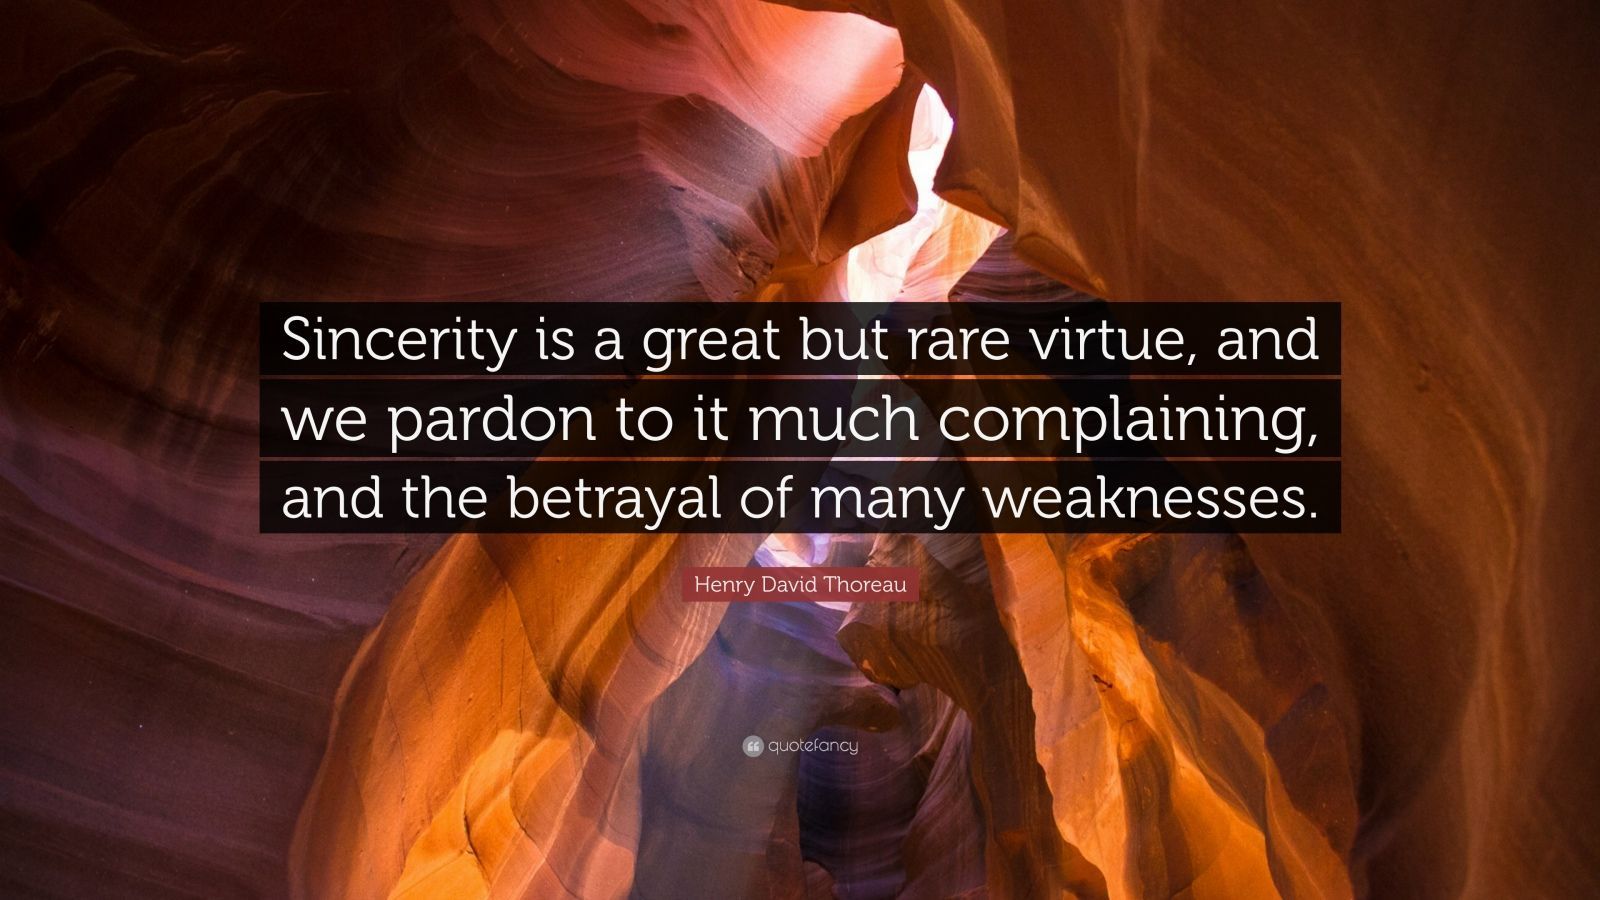 """Henry David Thoreau Quote: """"Sincerity is a great but rare virtue, and we pardon to it much complaining, and the betrayal of many weaknesses."""""""